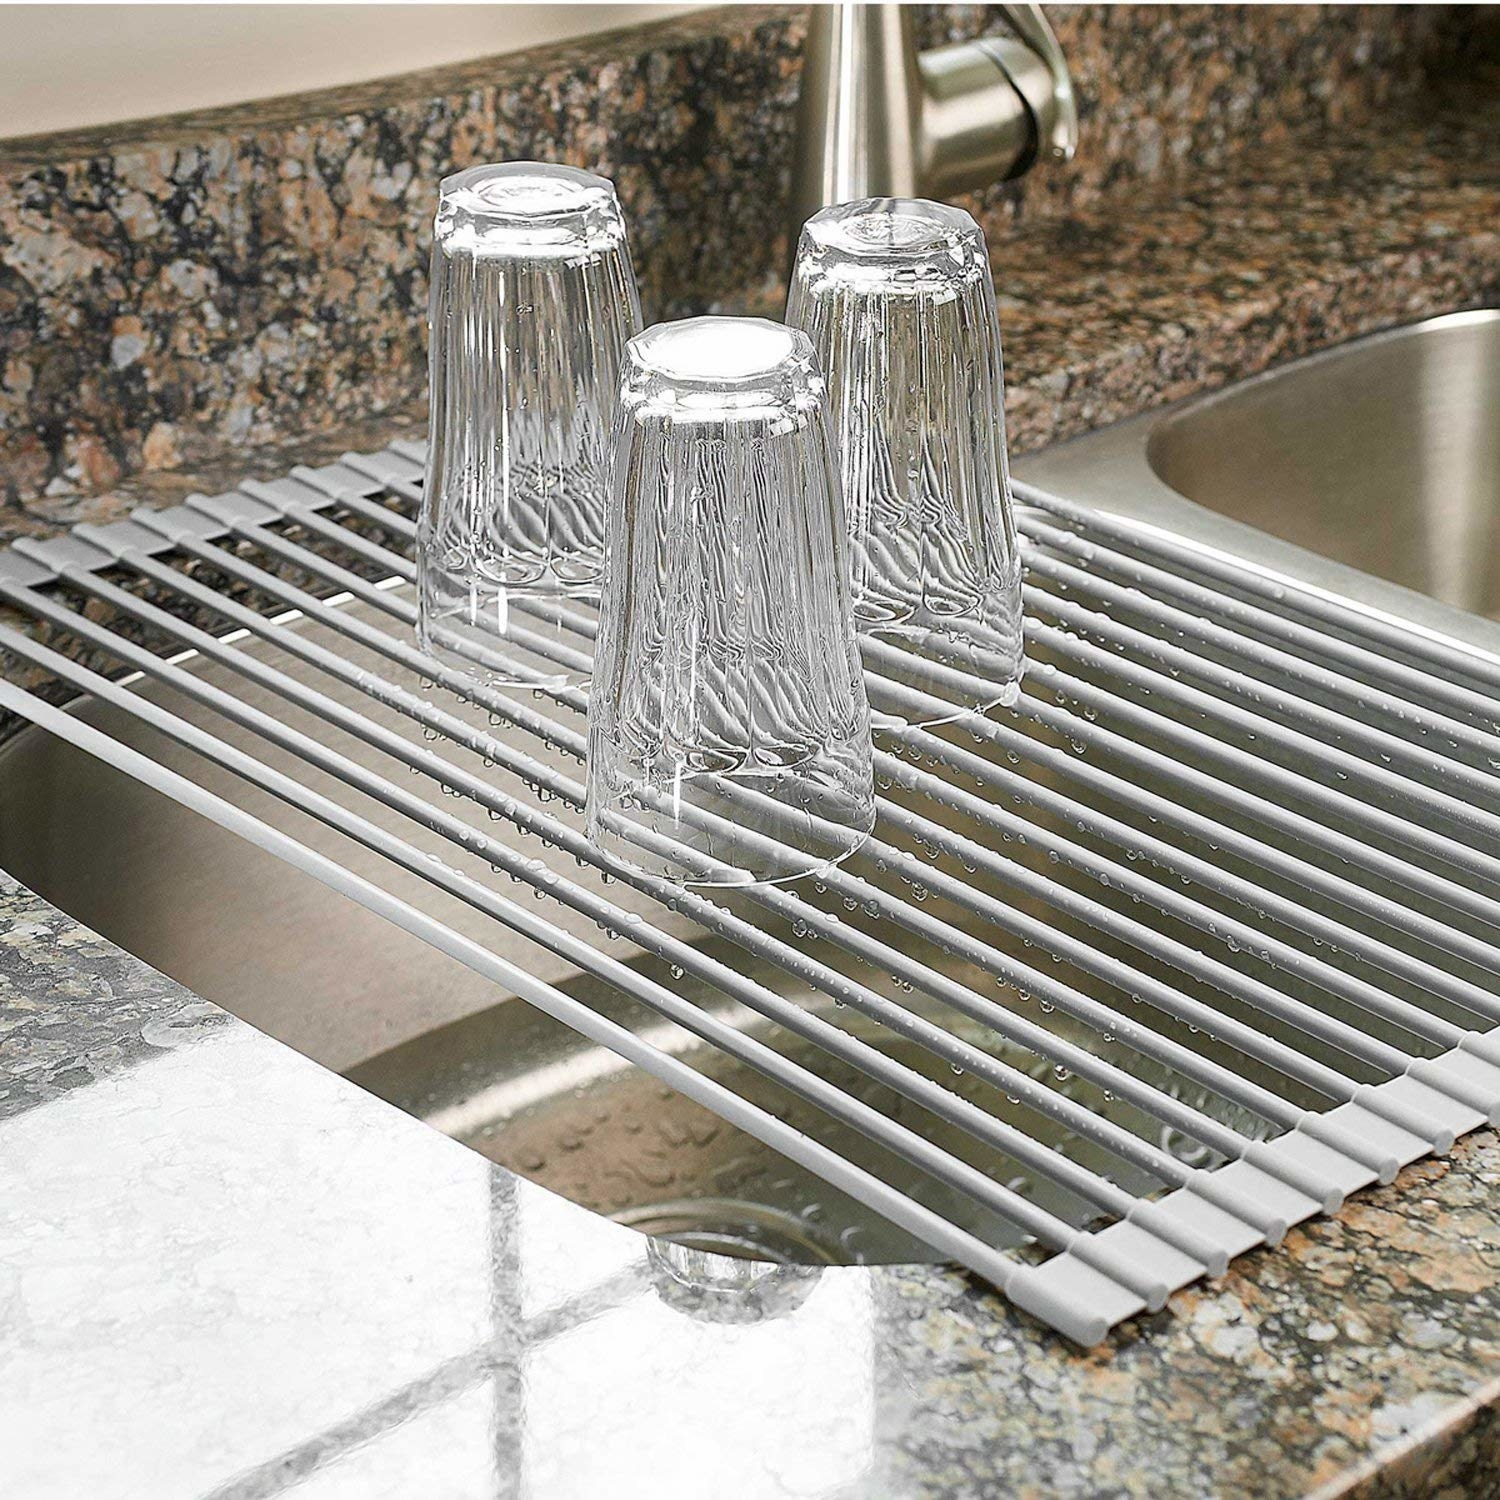 Roll up rack over sink drying cups